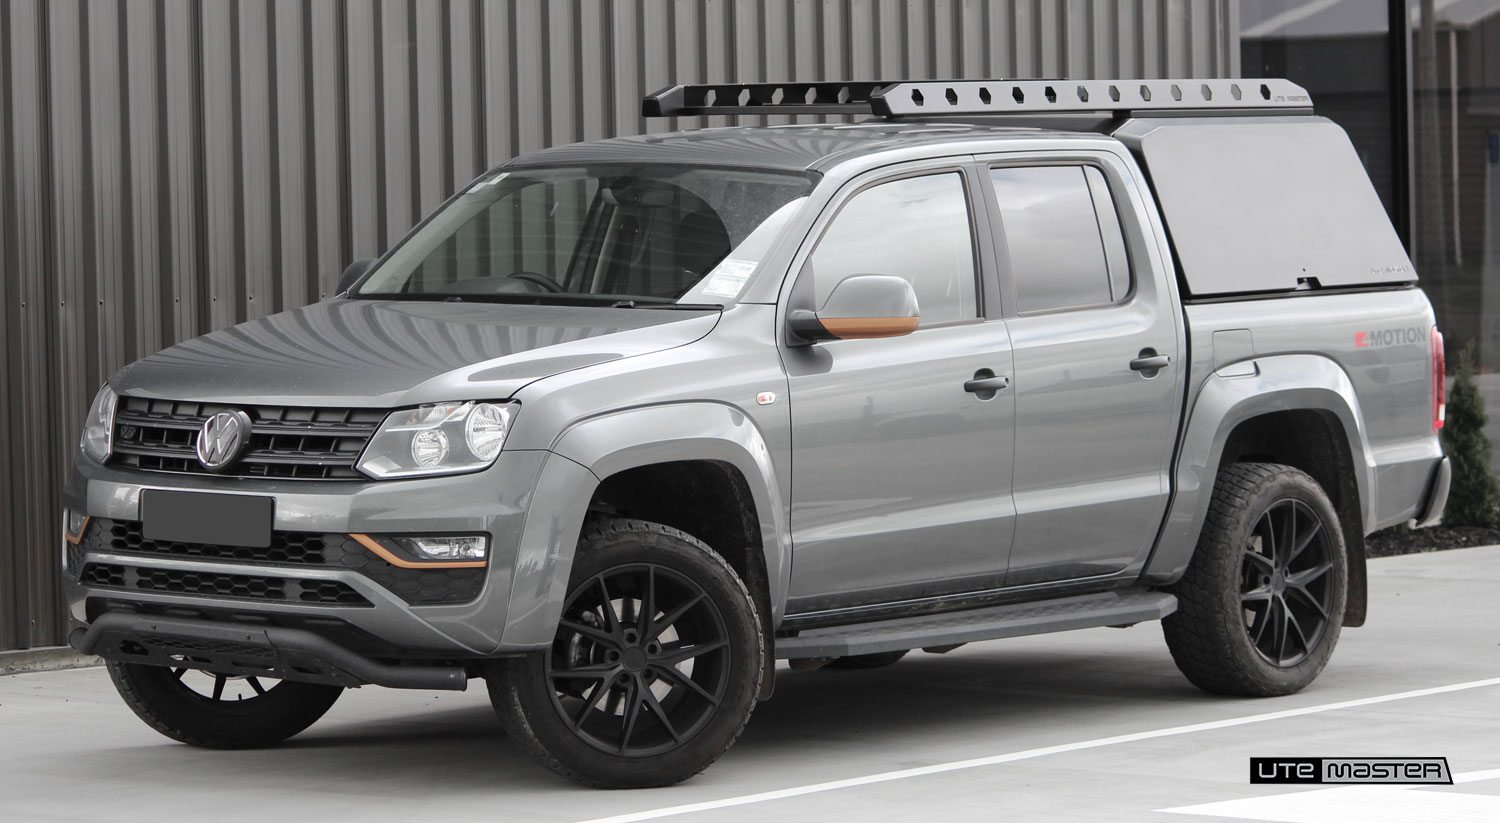 Utemaster Aluminium Canopy Grey Volkswagen Amarok VW Tough Black Roof Tray Racks